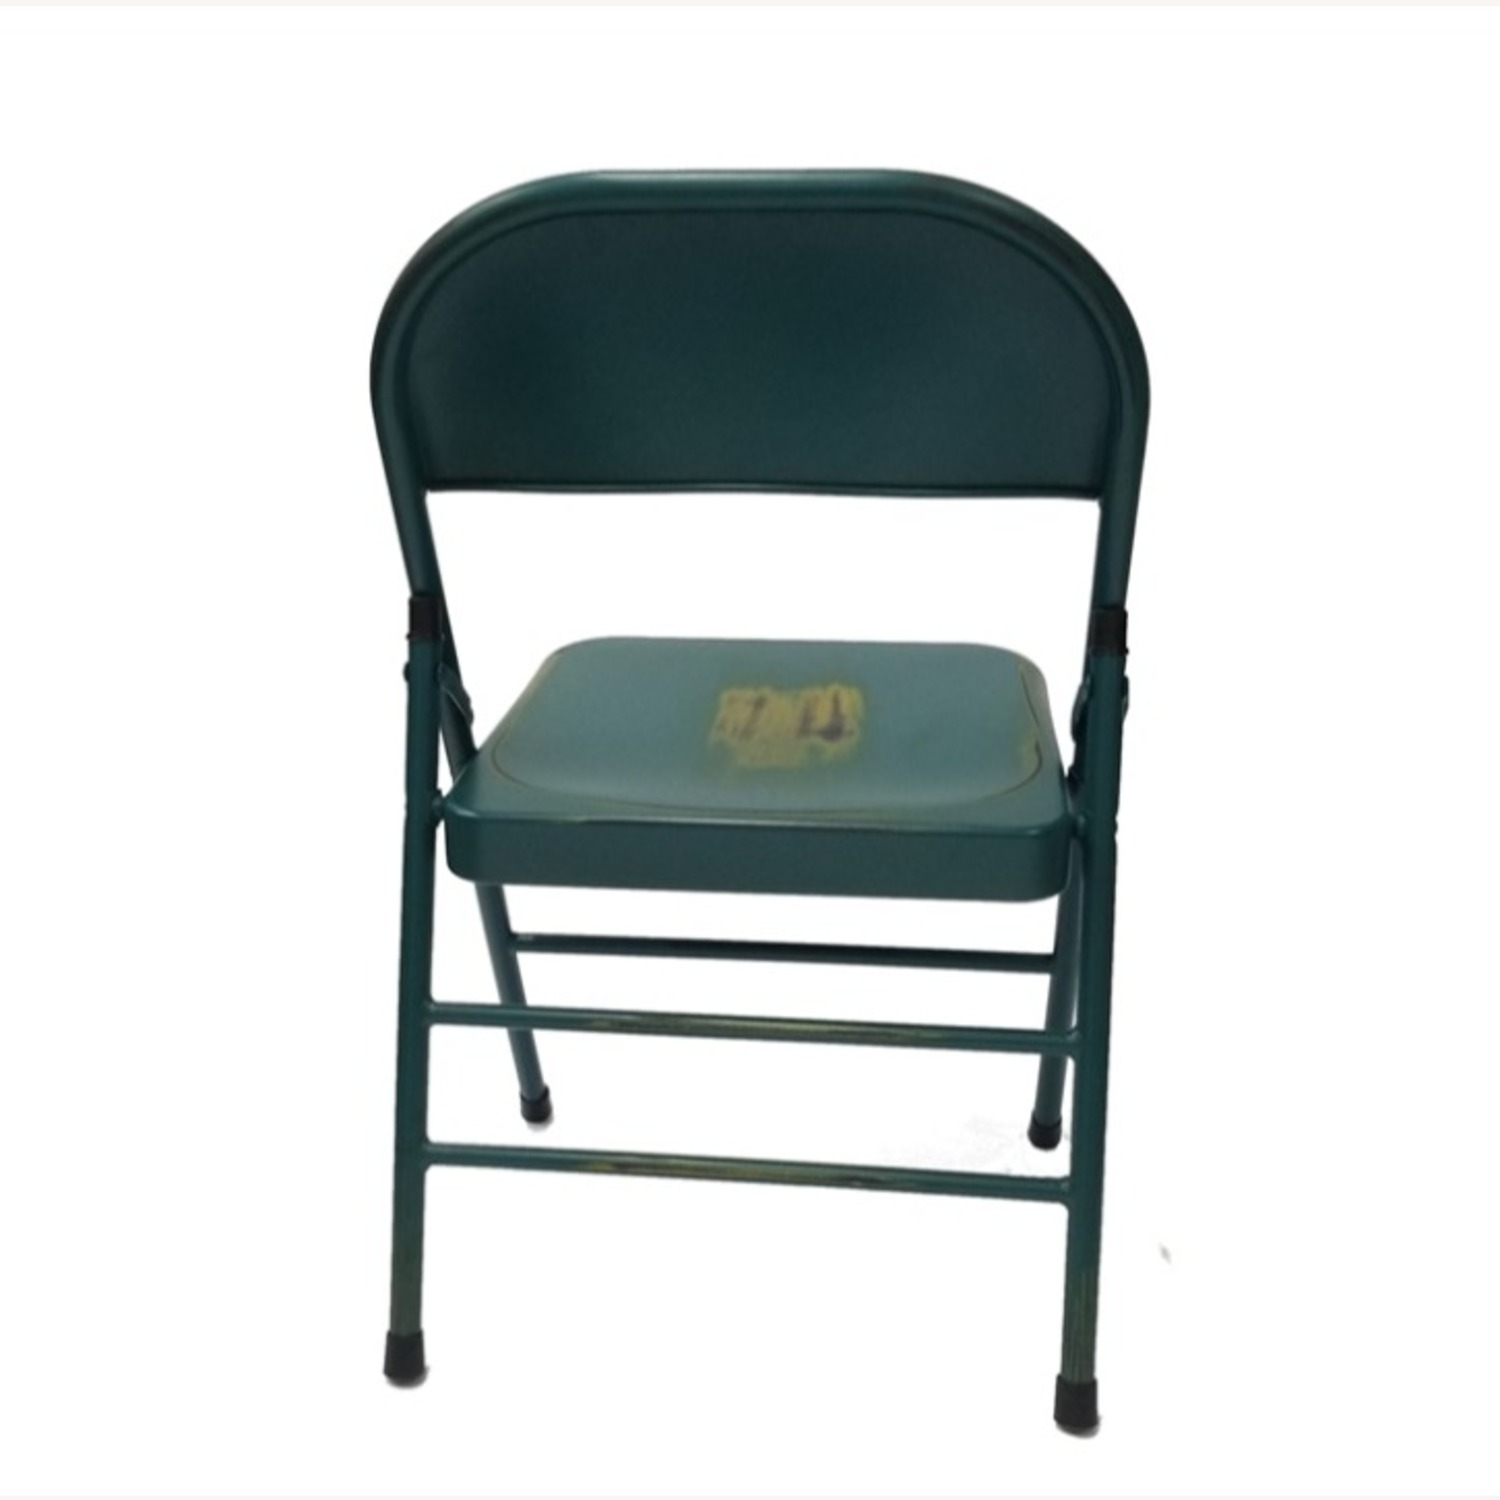 Folding Chair In Turquoise Powder Coated Finish - image-2